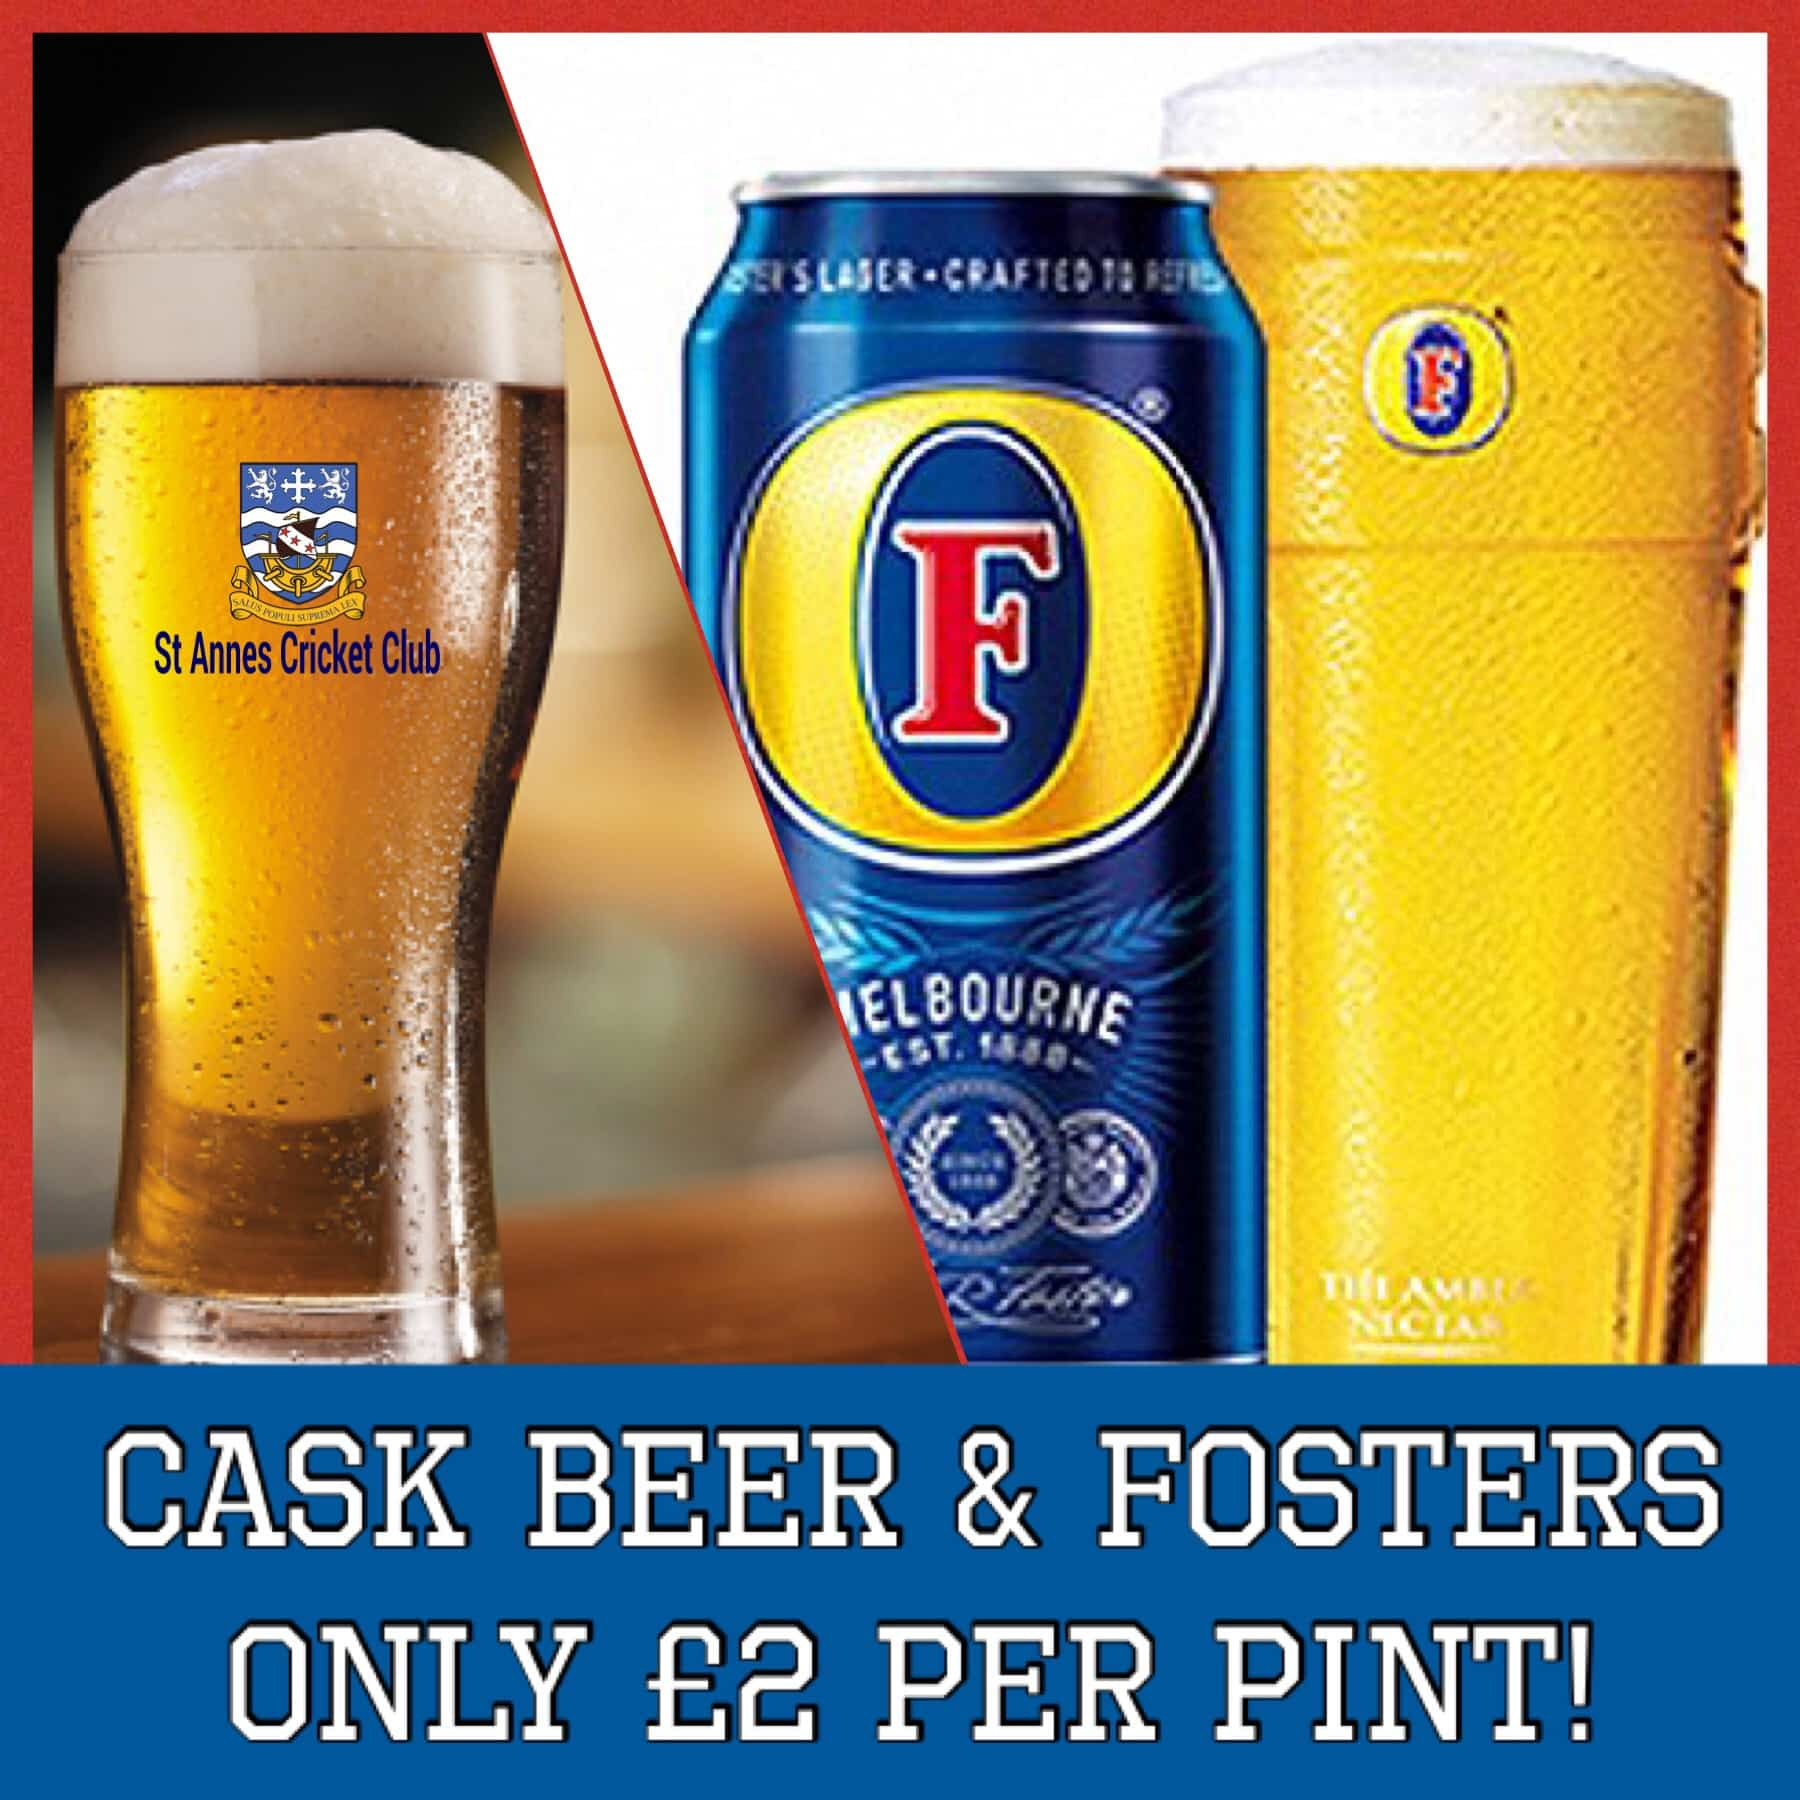 Cask Beers & Fosters £2 per pint drinks offer